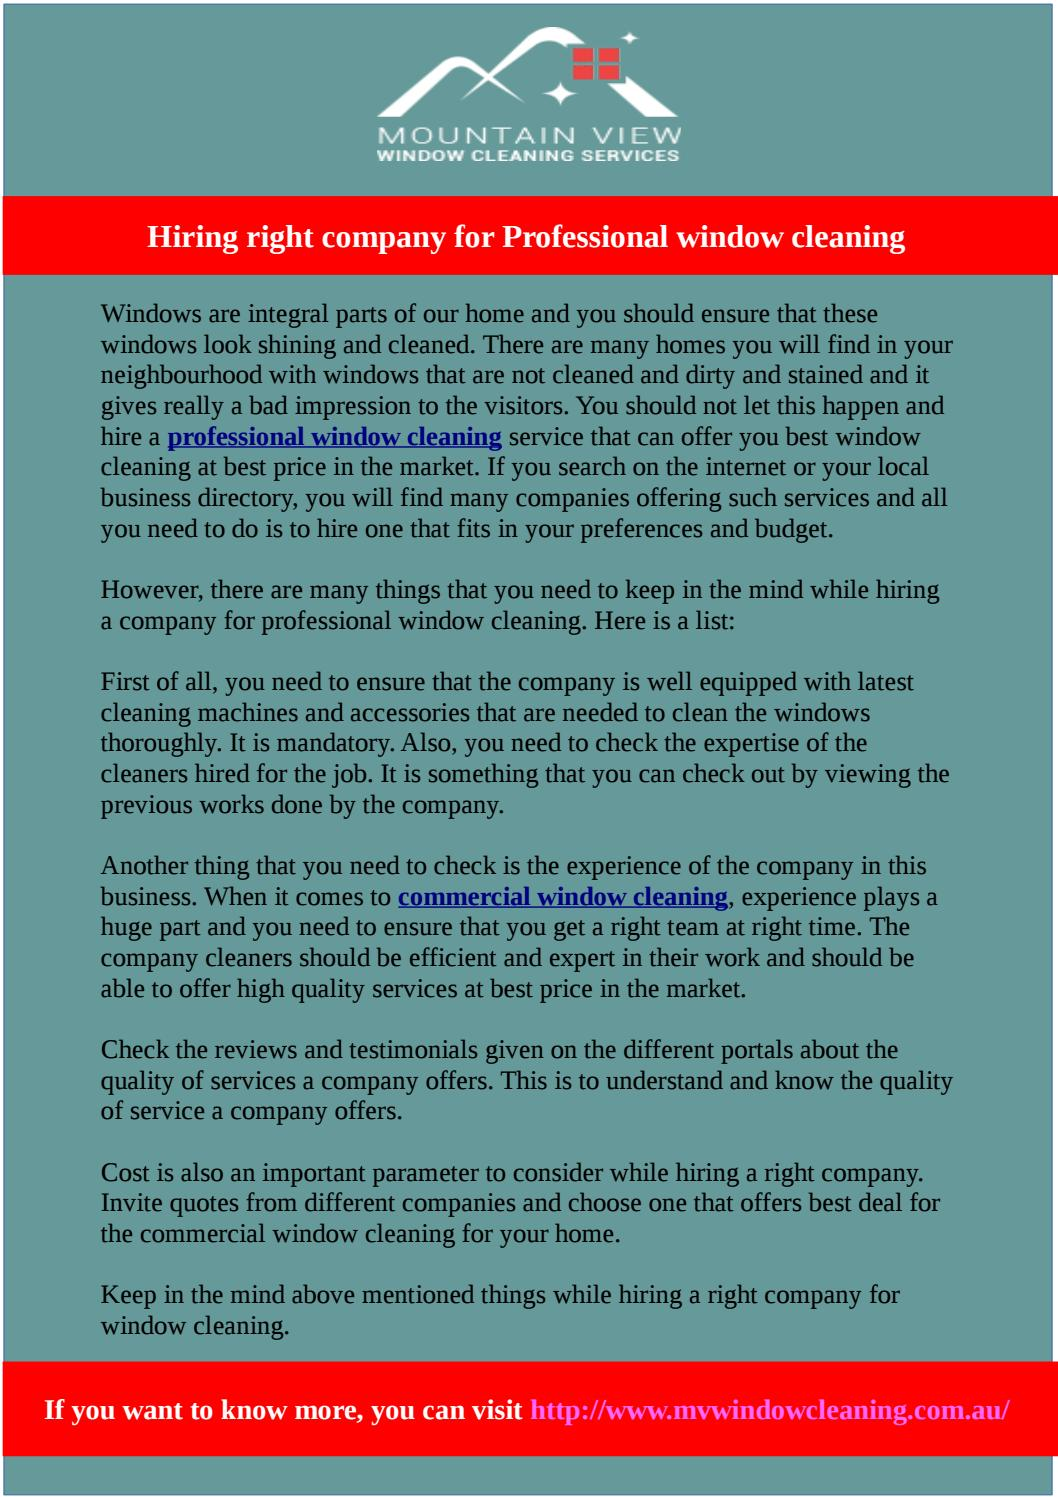 Best thing to clean windows with - Hiring Right Company For Professional Window Cleaning By Window Cleaning Issuu